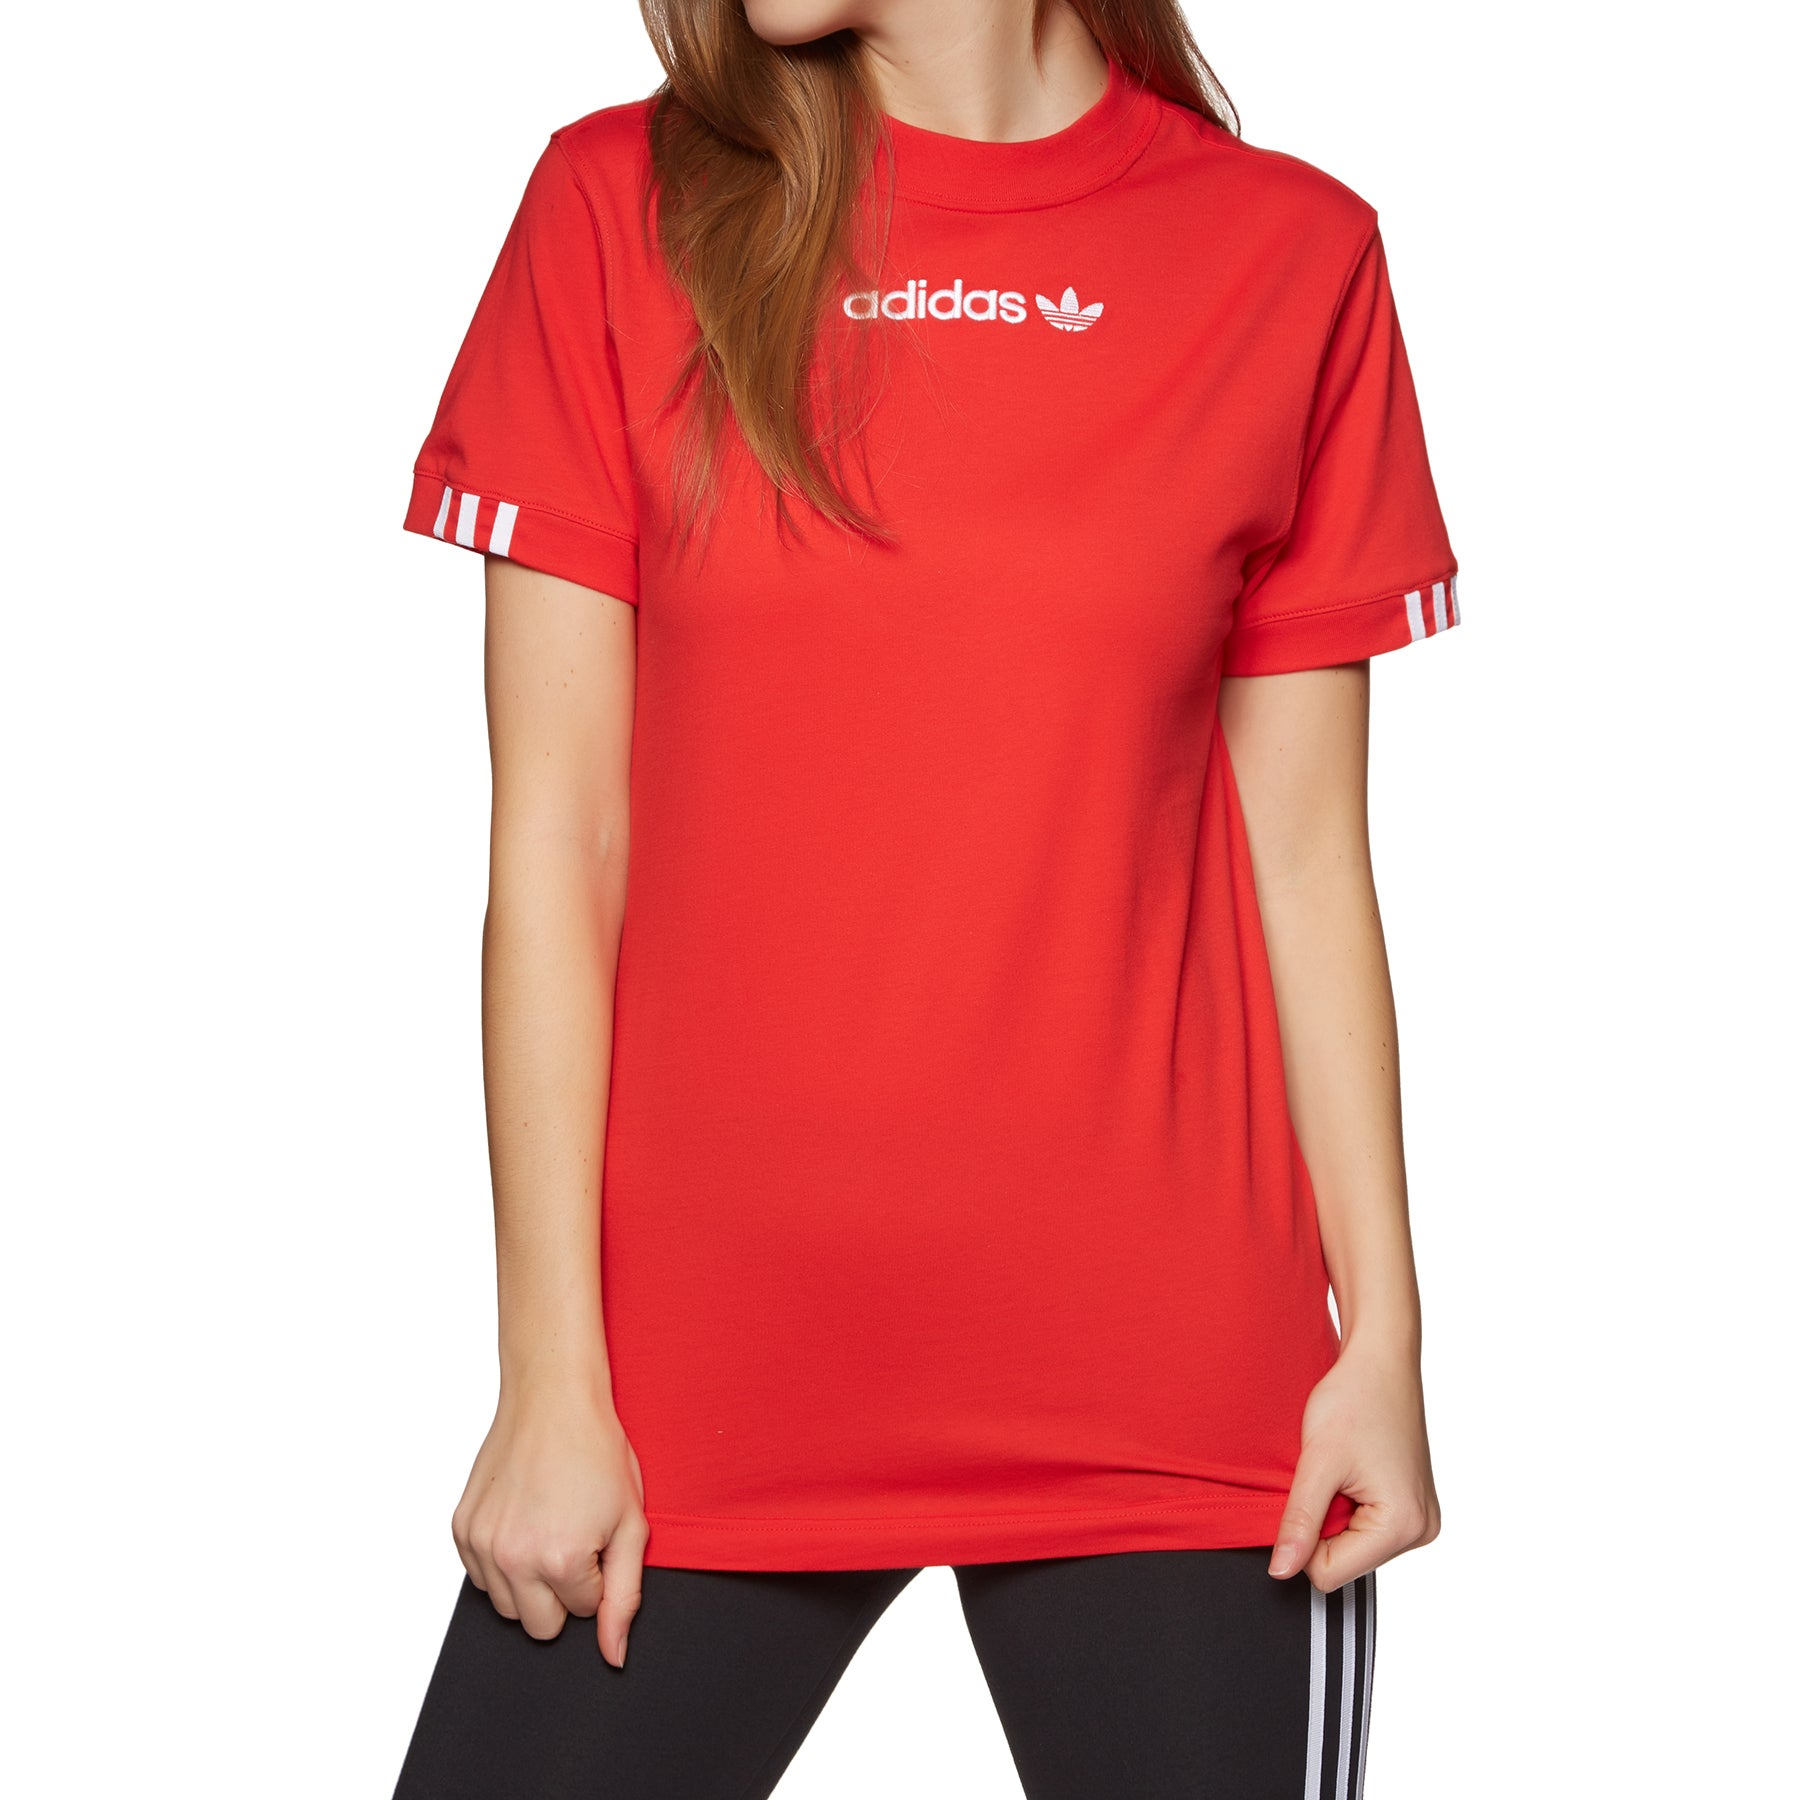 afa99144d08 Adidas Originals Coeeze Womens Short Sleeve T-Shirt available from ...